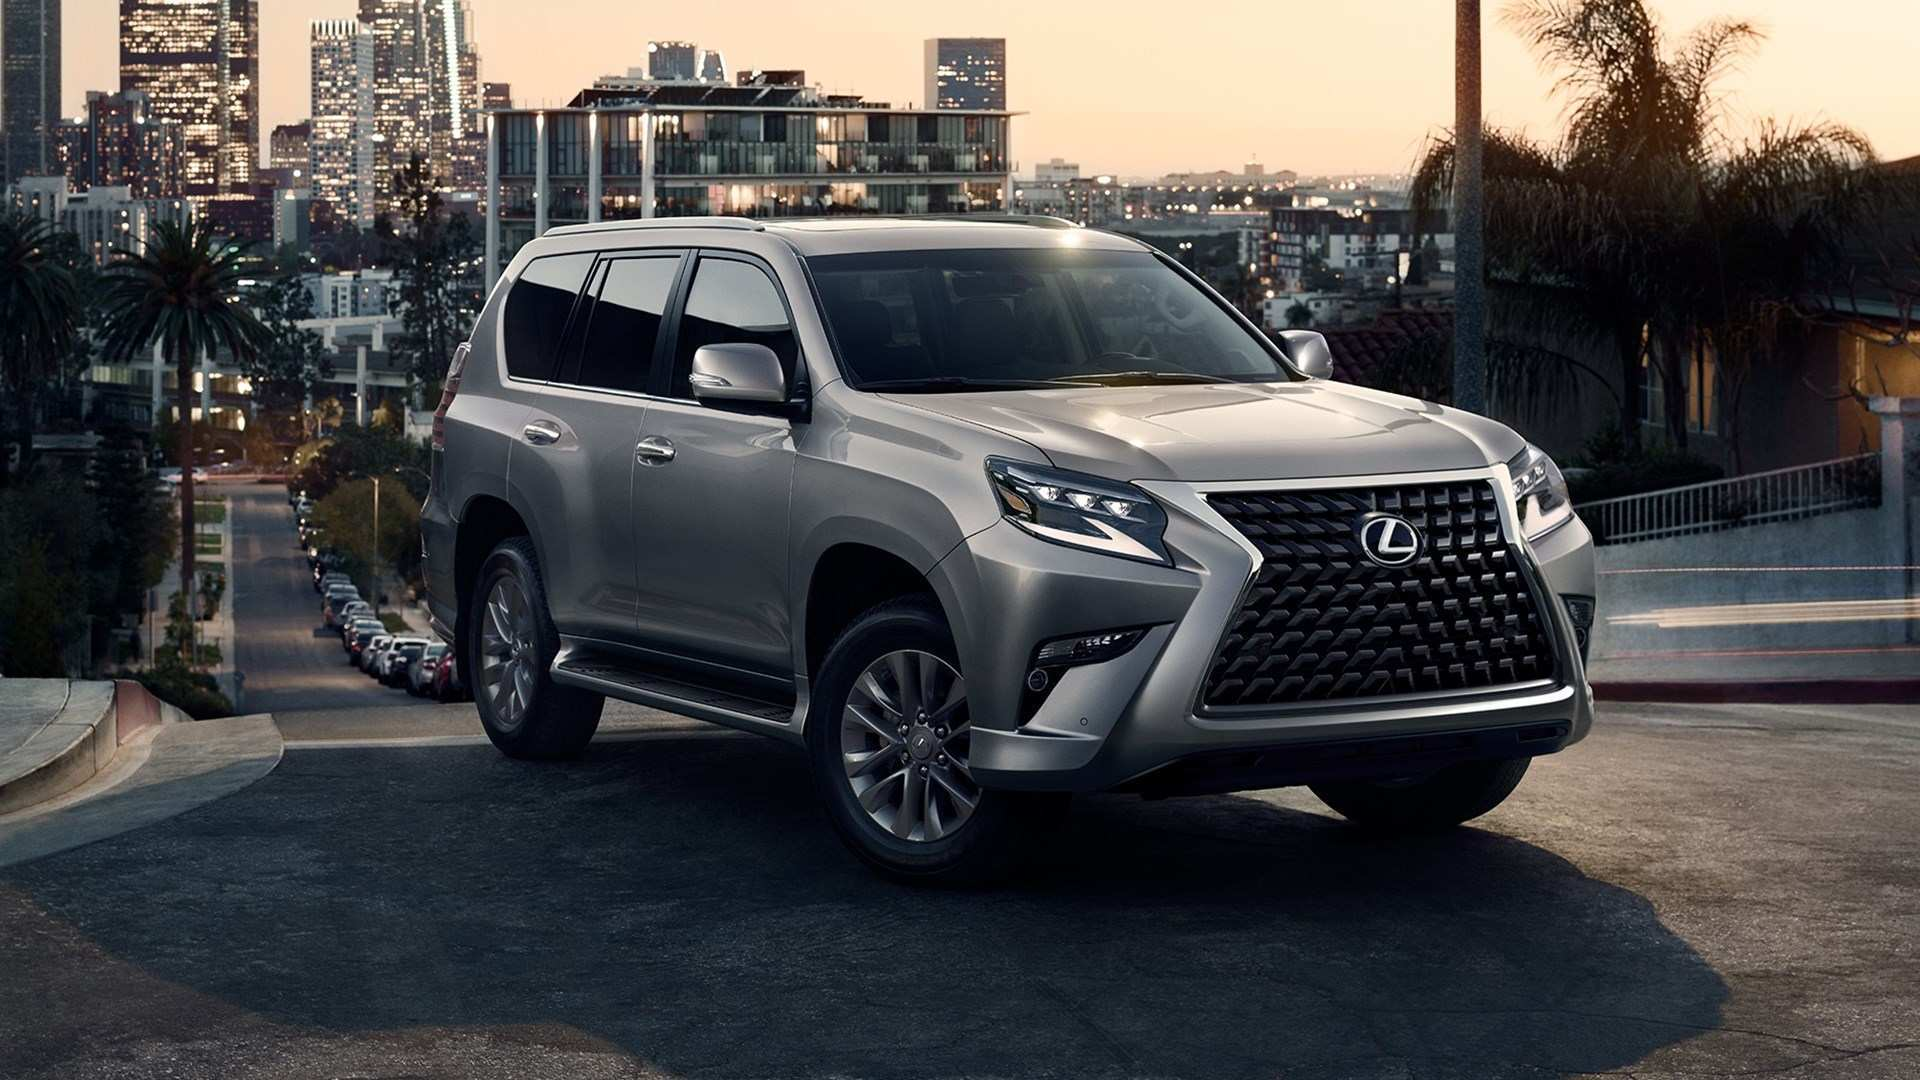 37 New When Will 2020 Lexus Gx Be Released Speed Test